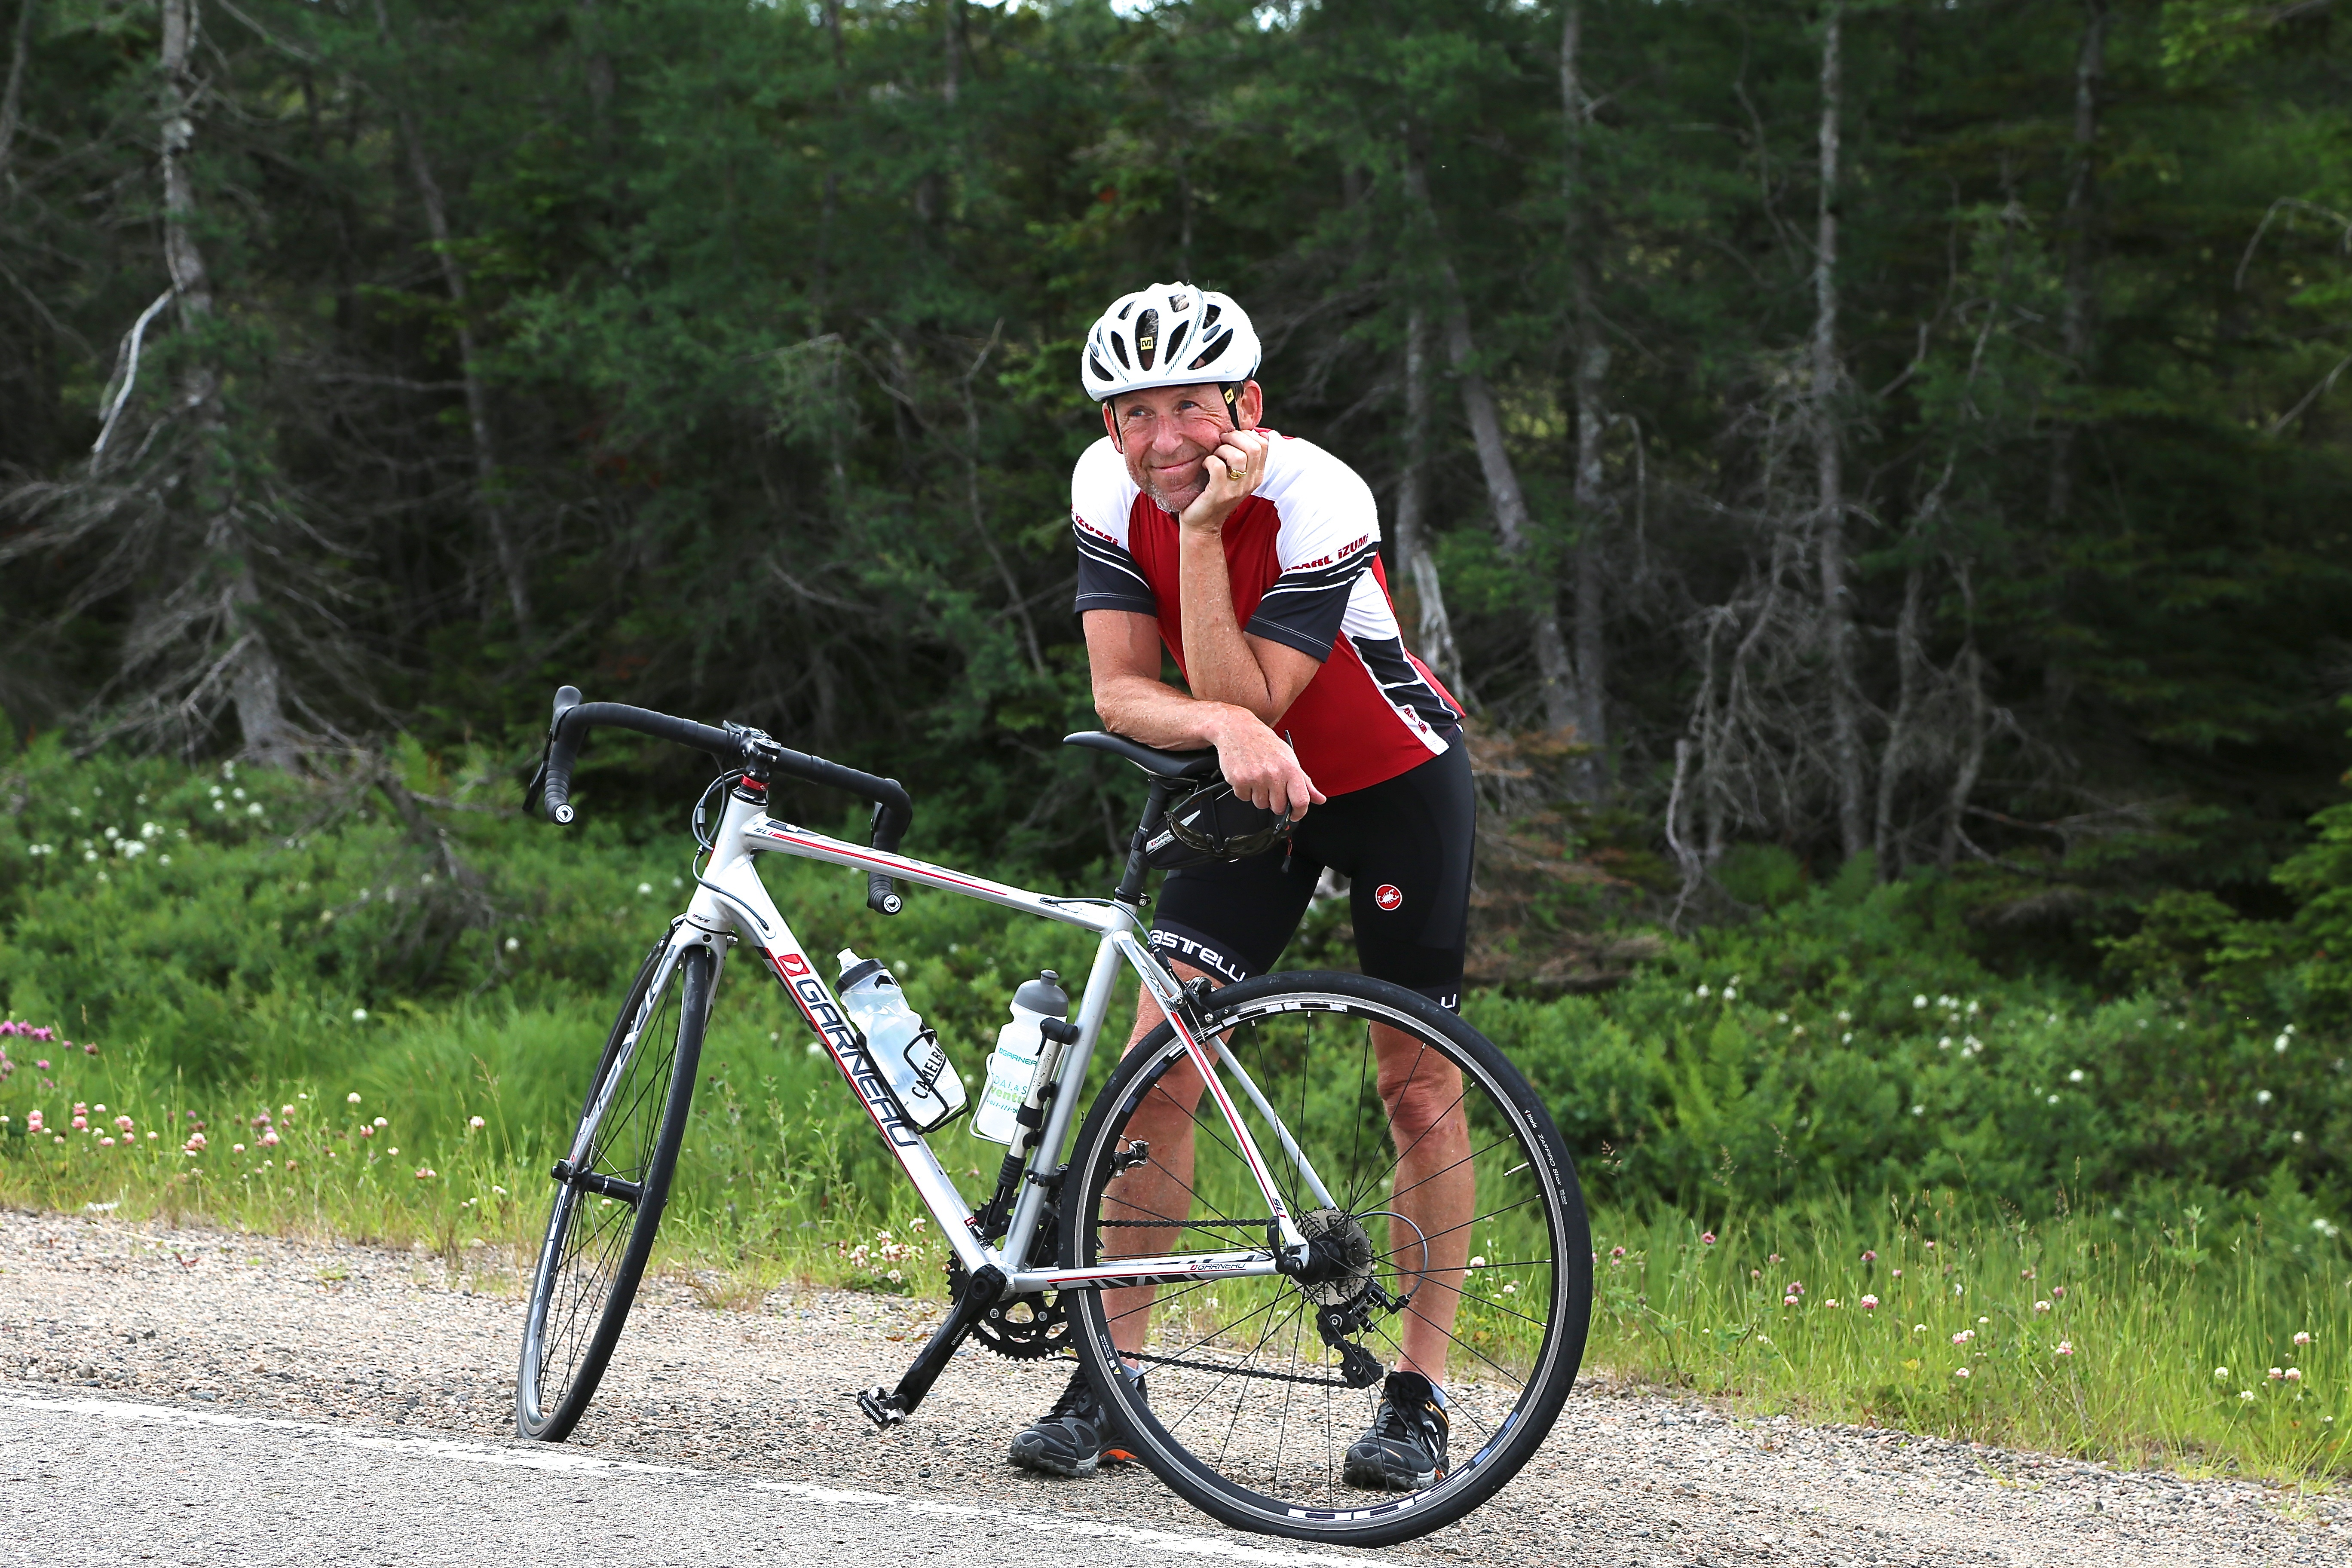 Cabot trail bike tour road biker